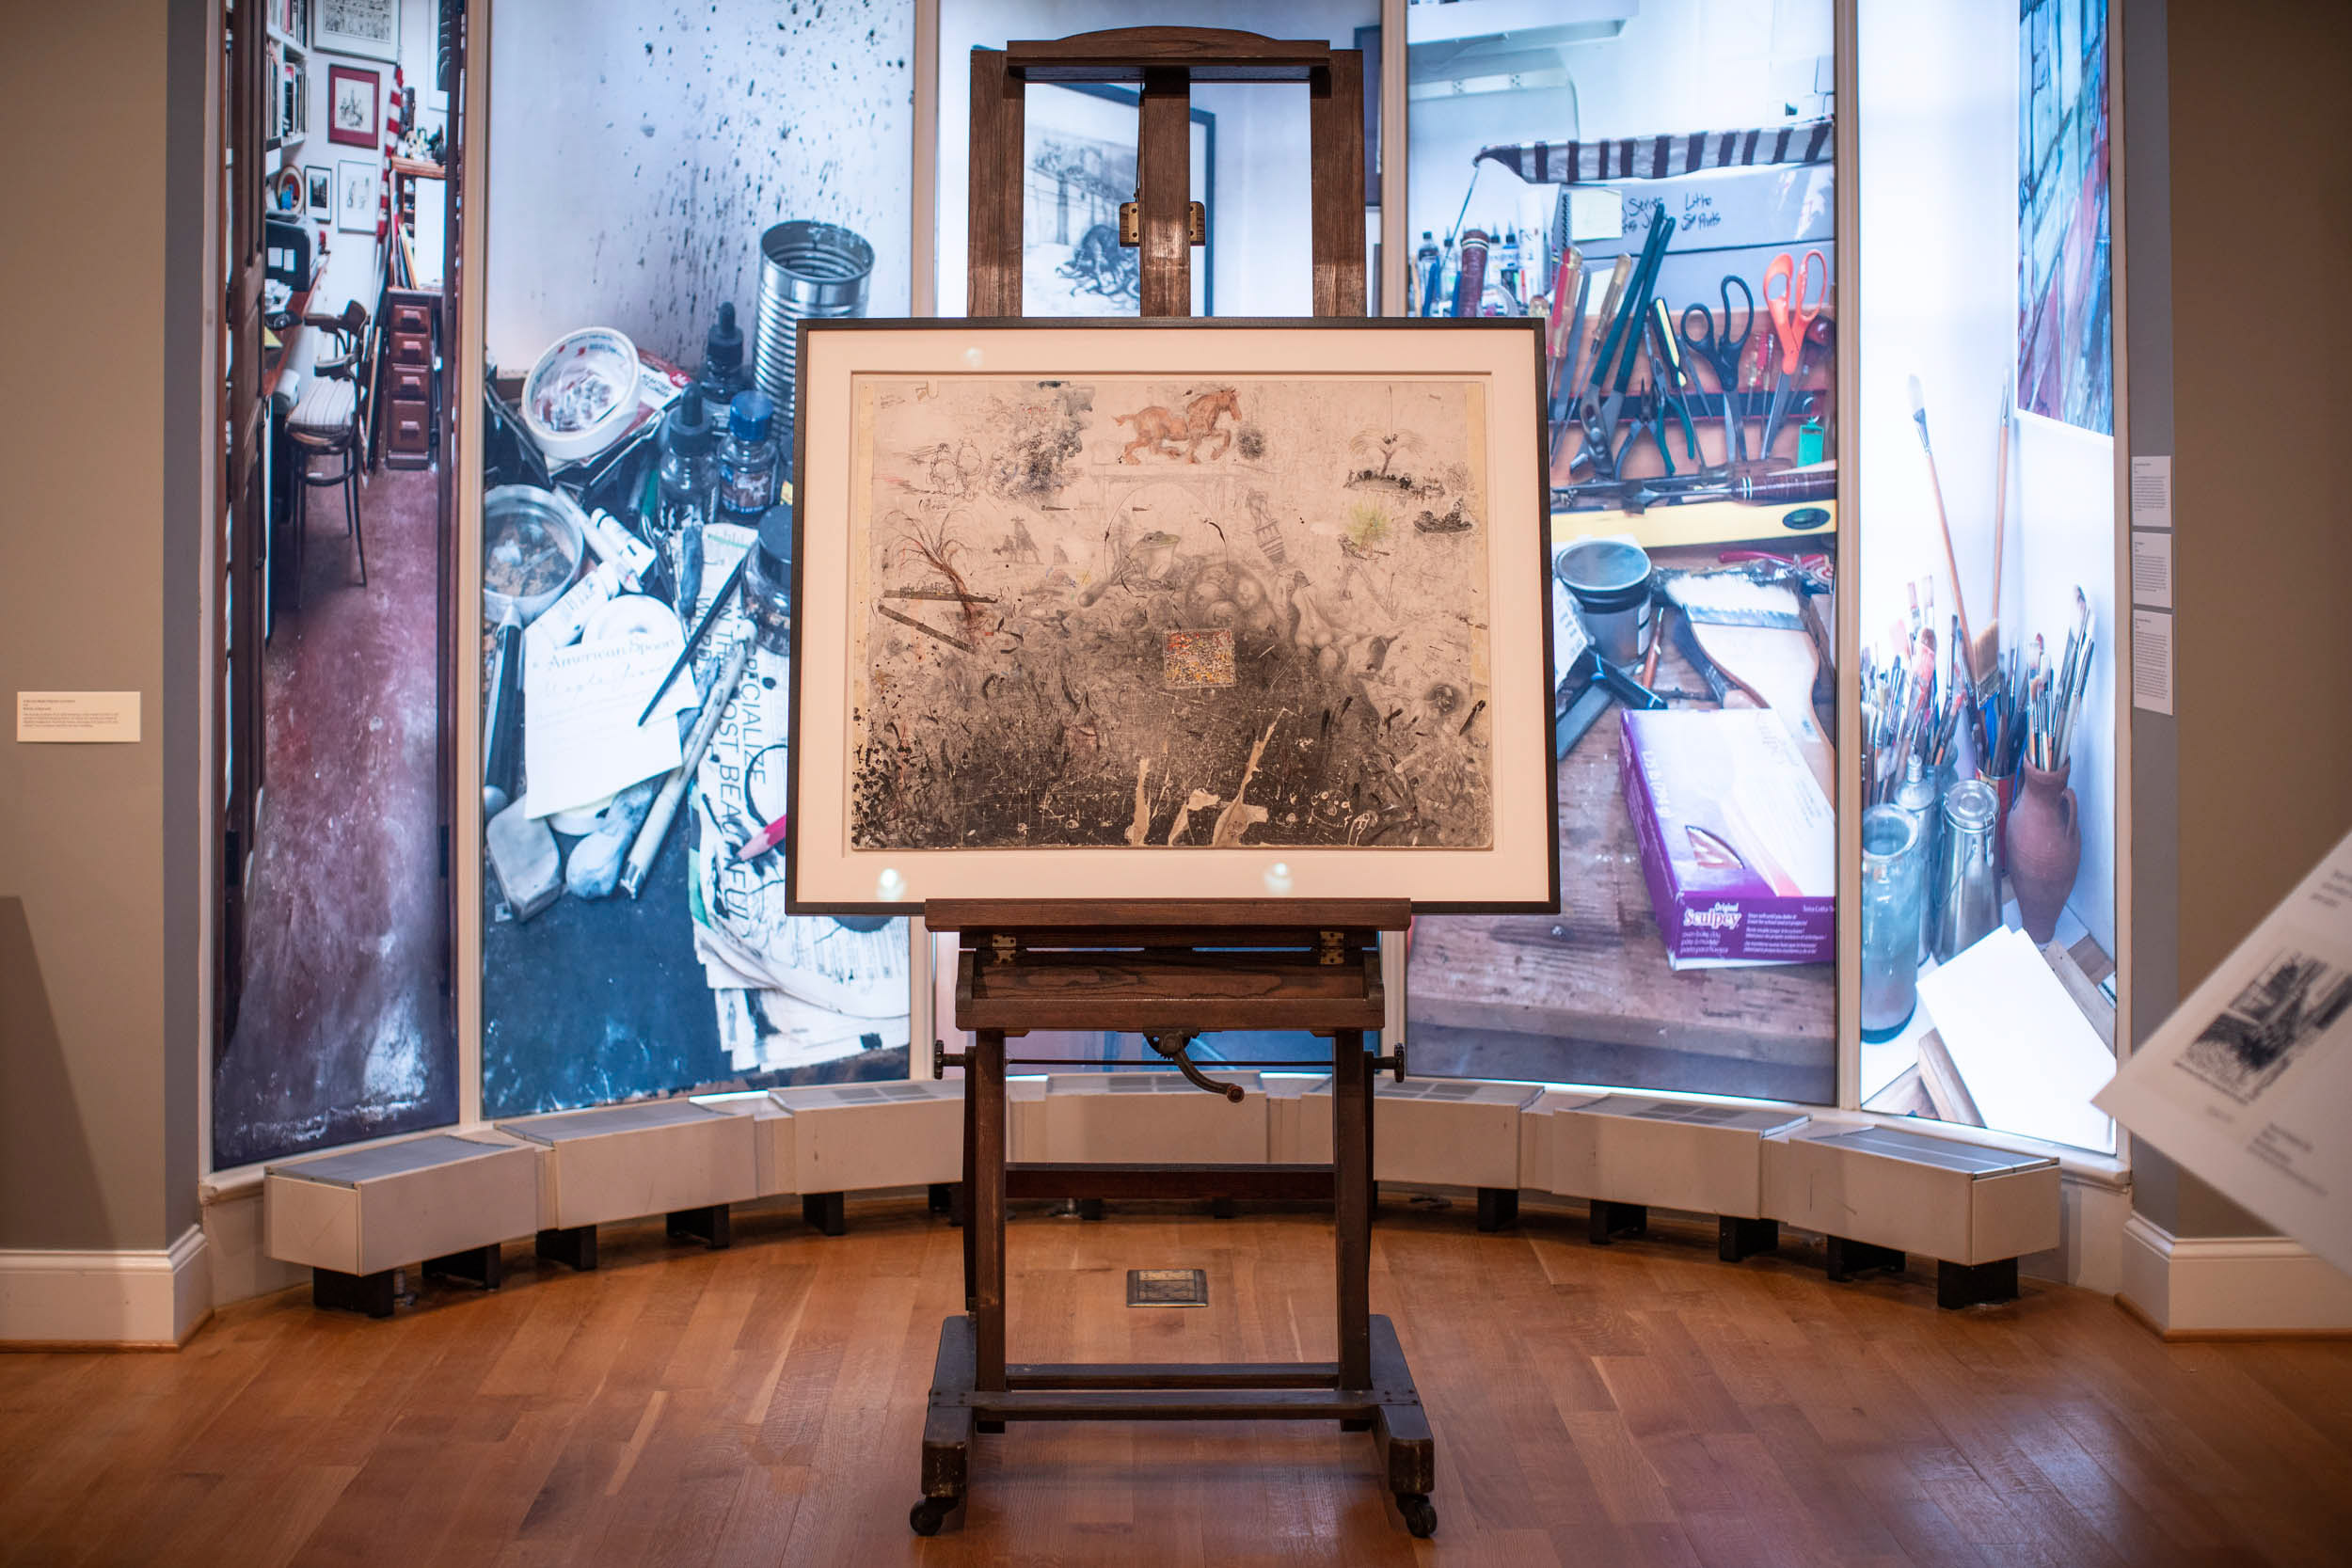 In front of the panels that show Oliphant's studio stands the only piece on loan from him: one of his drawing boards, which shows his imagination at play.